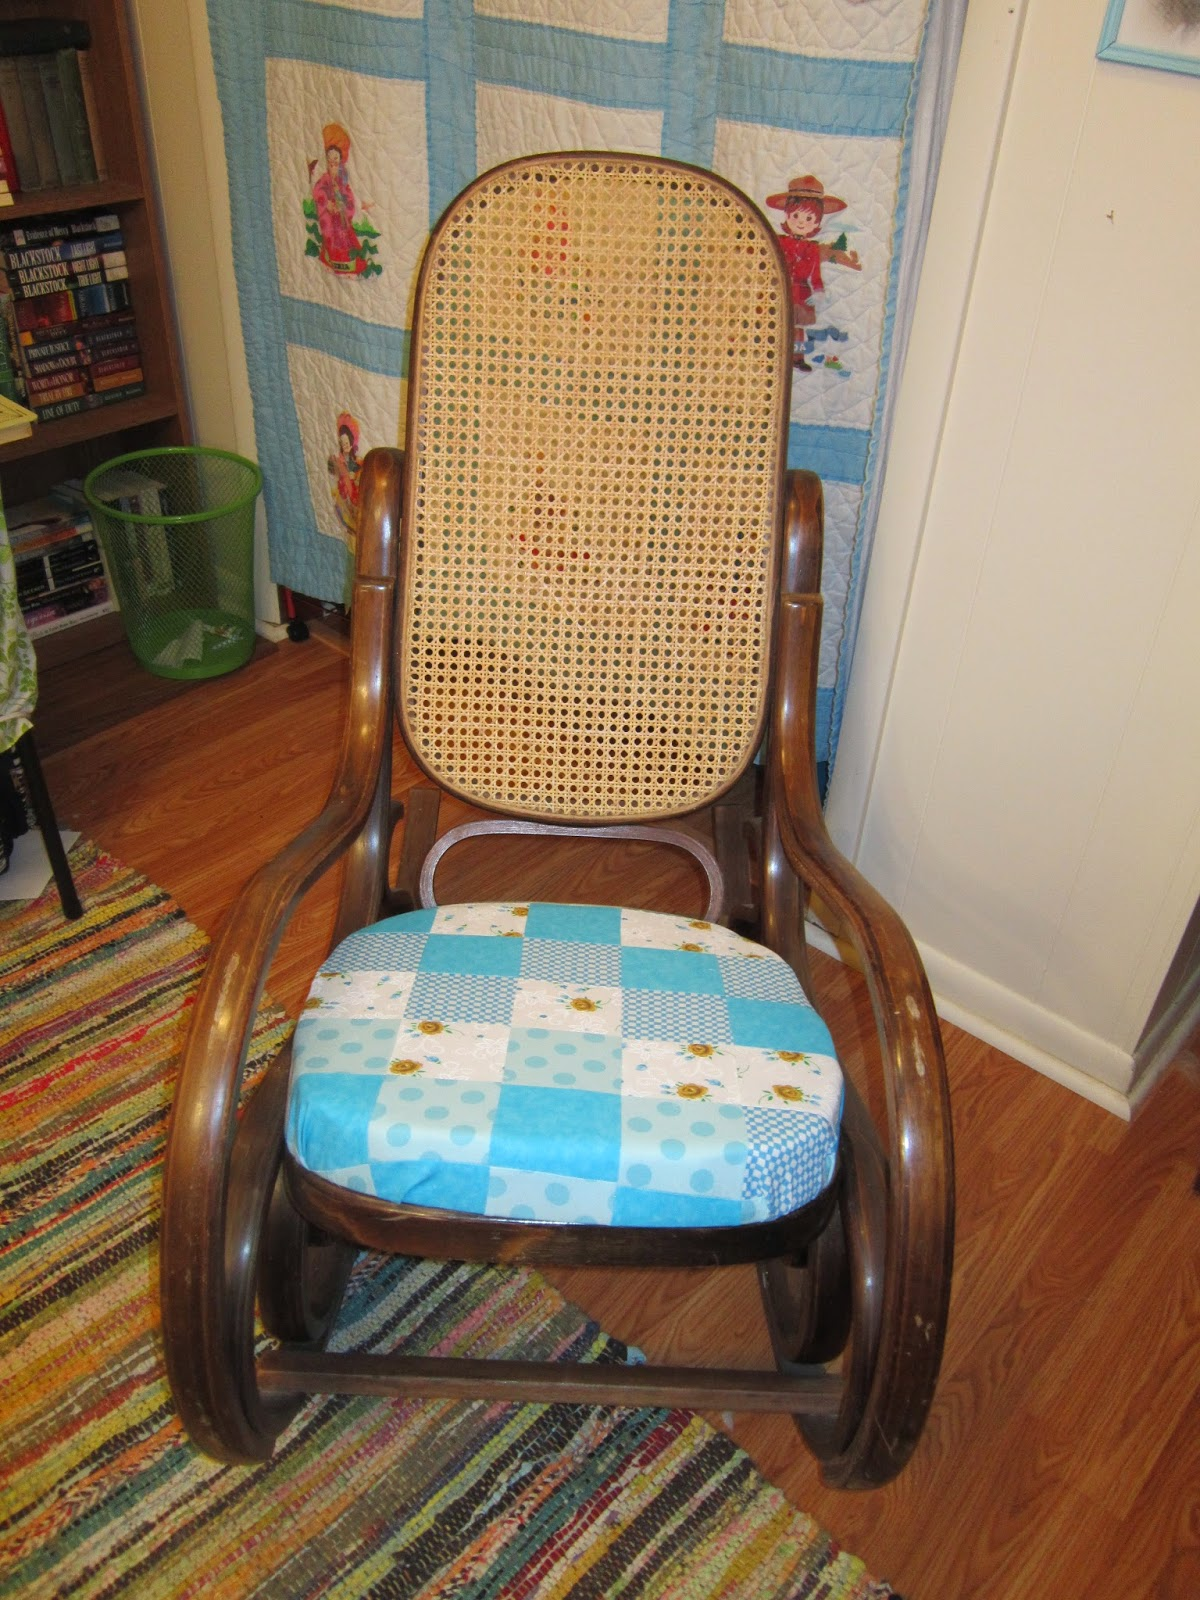 I Bought This Rocking Chair At An Auction For $8. The First Time I Sat In  It, I Plopped Down And Broke The Seat! My Husband Cut Out A New Seat For ...